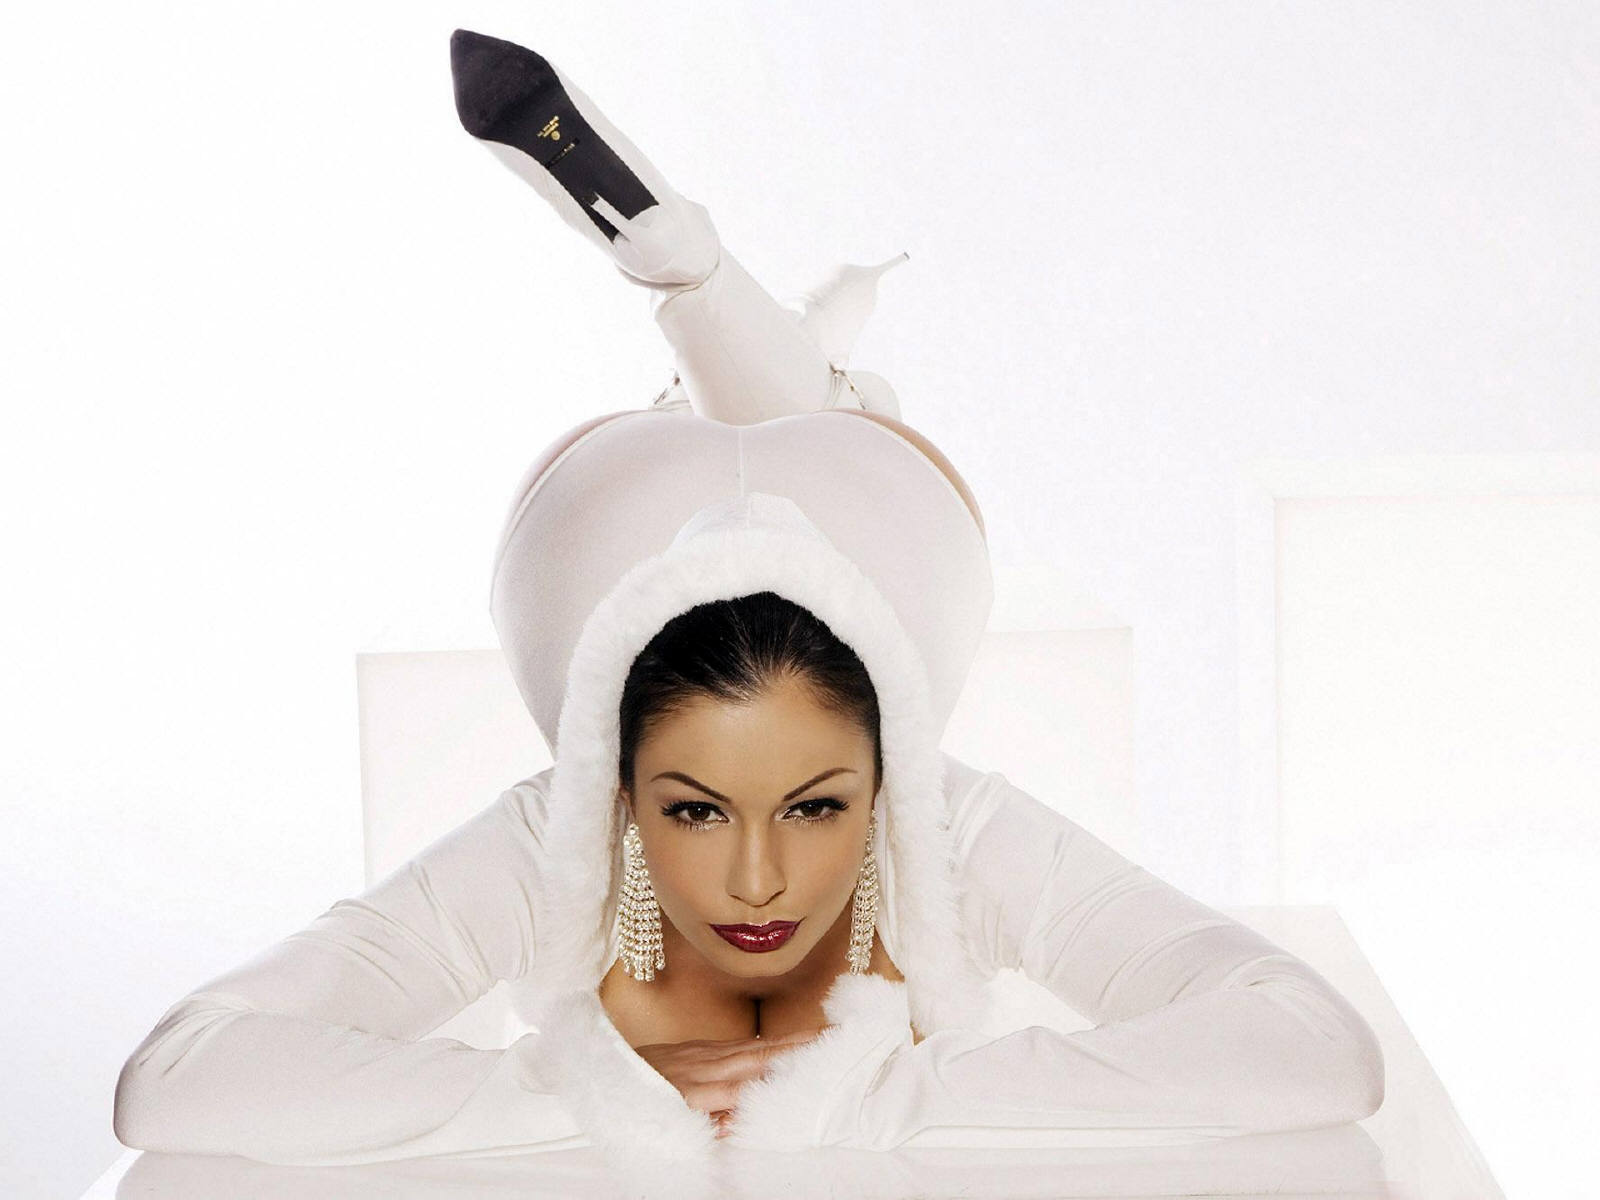 aria giovanni celebrities